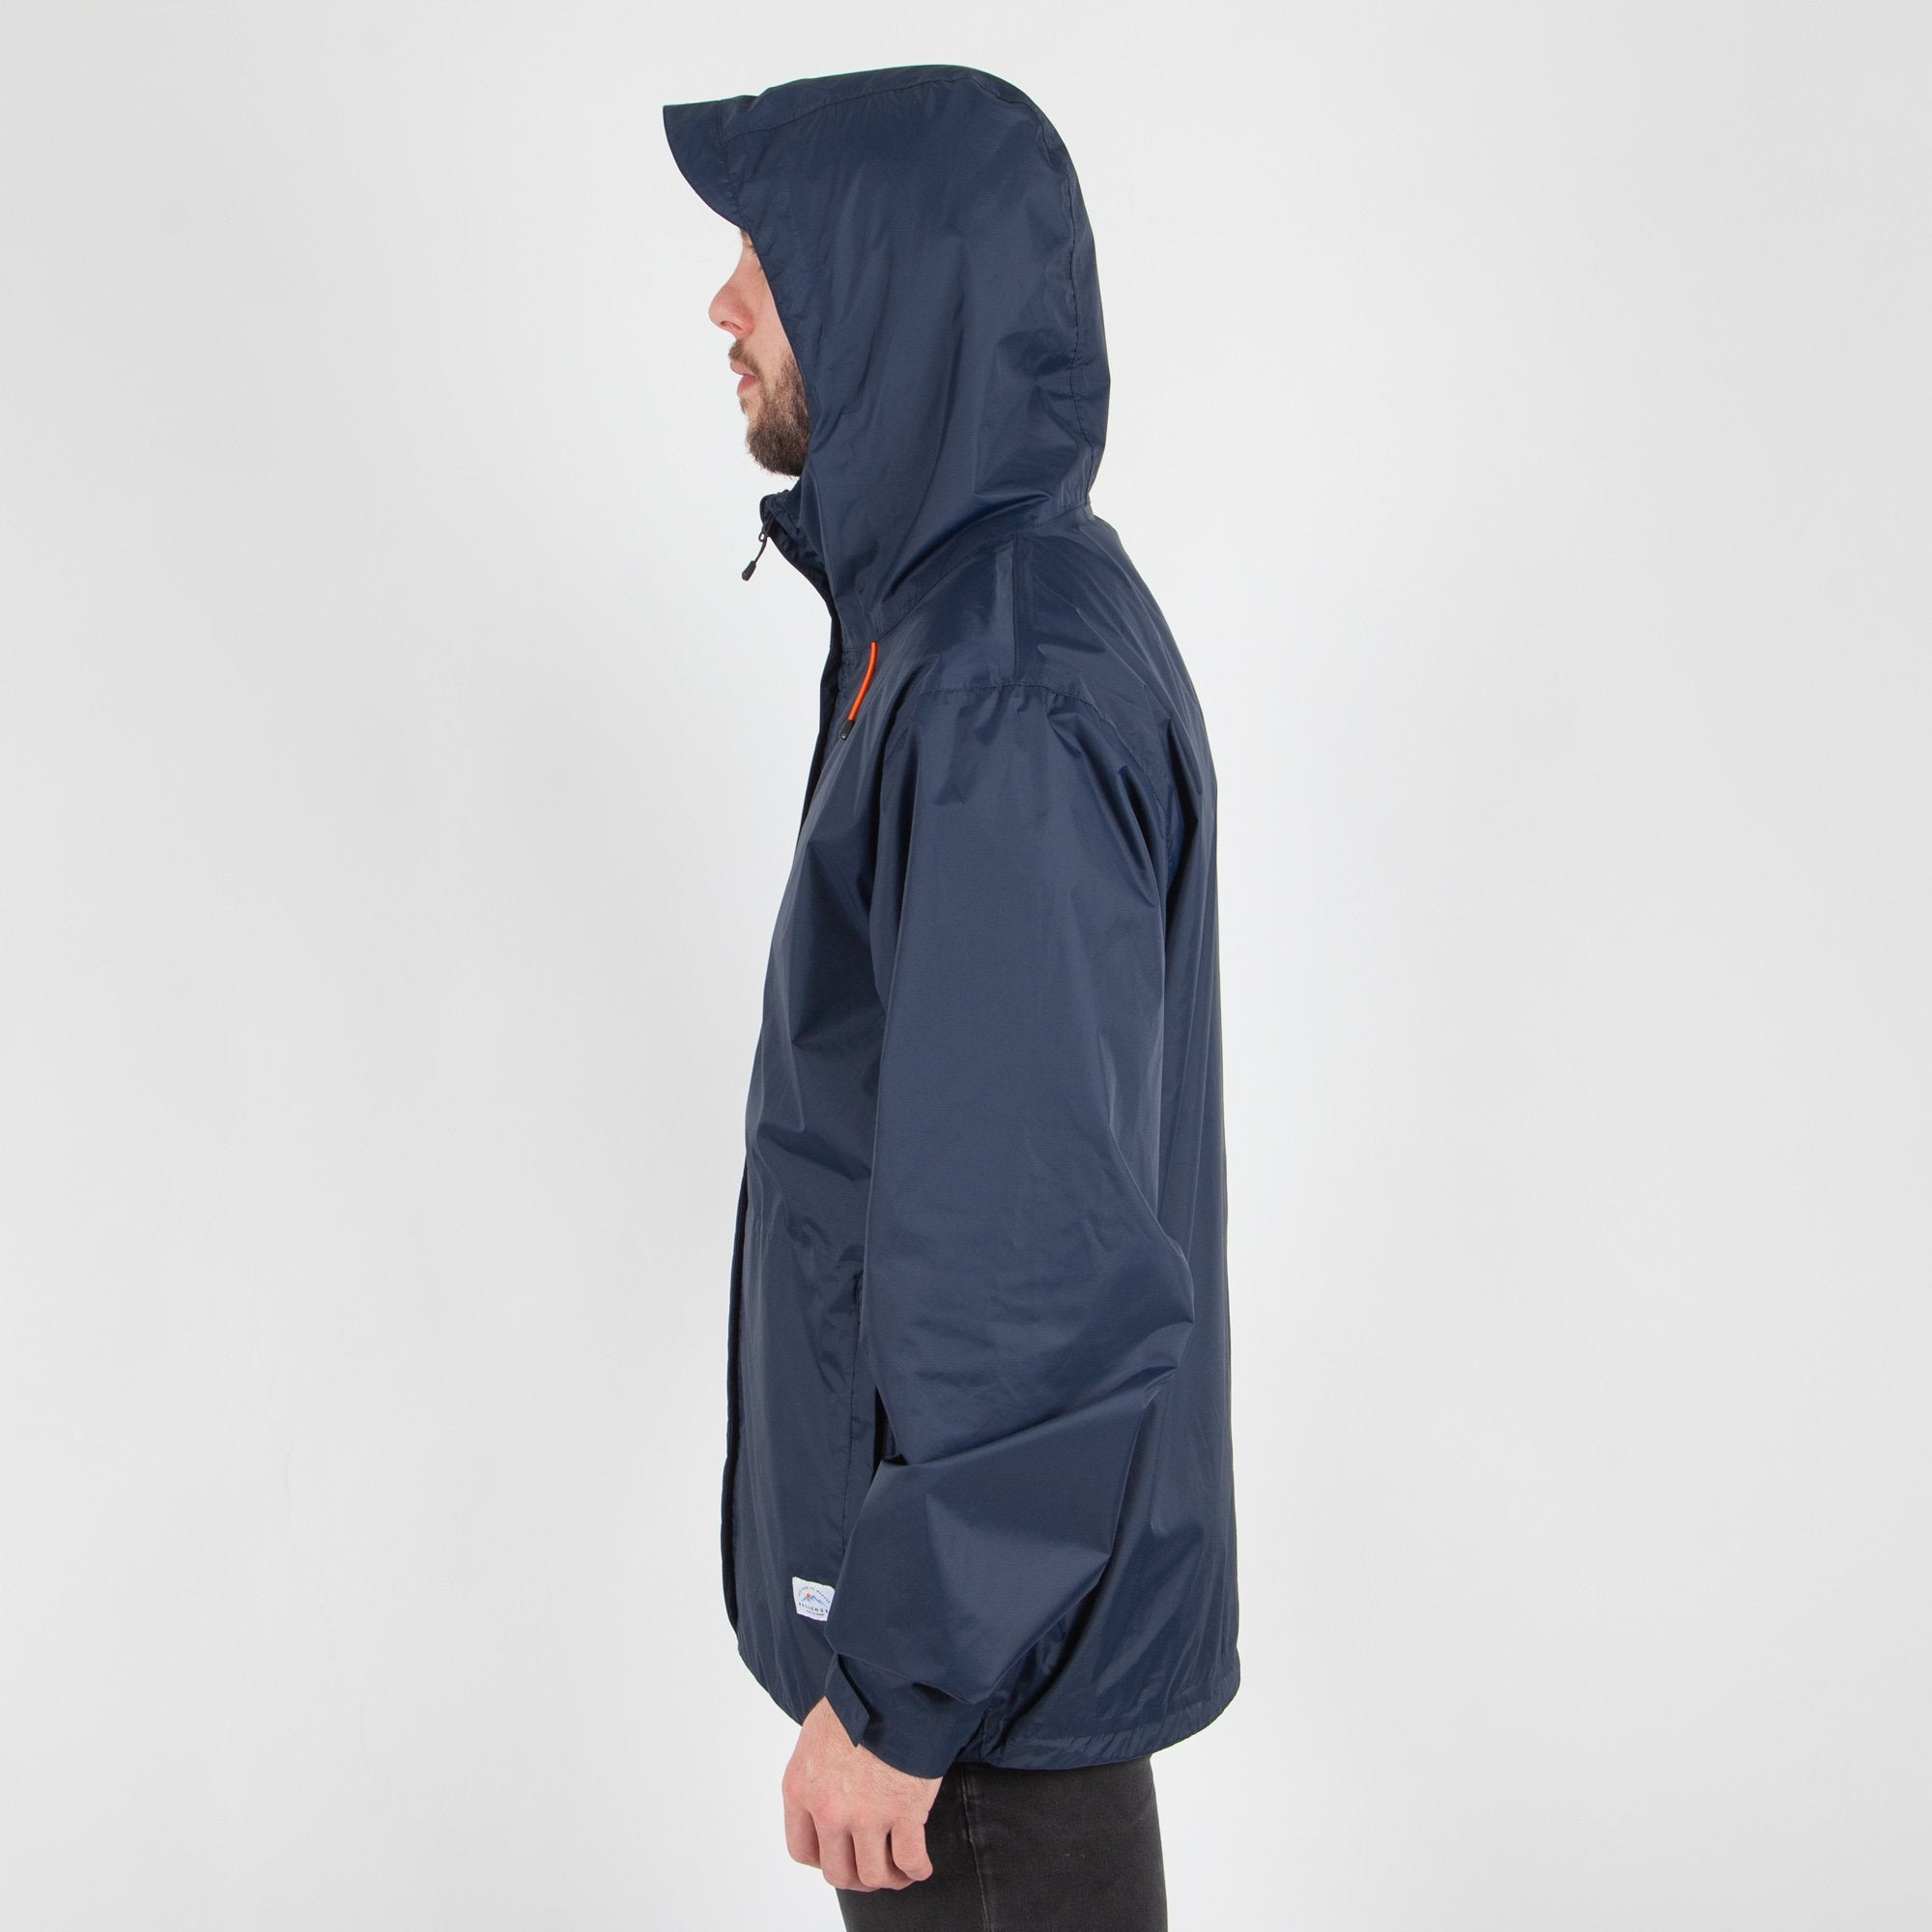 Norcal Waterproof Jacket - Navy image 7